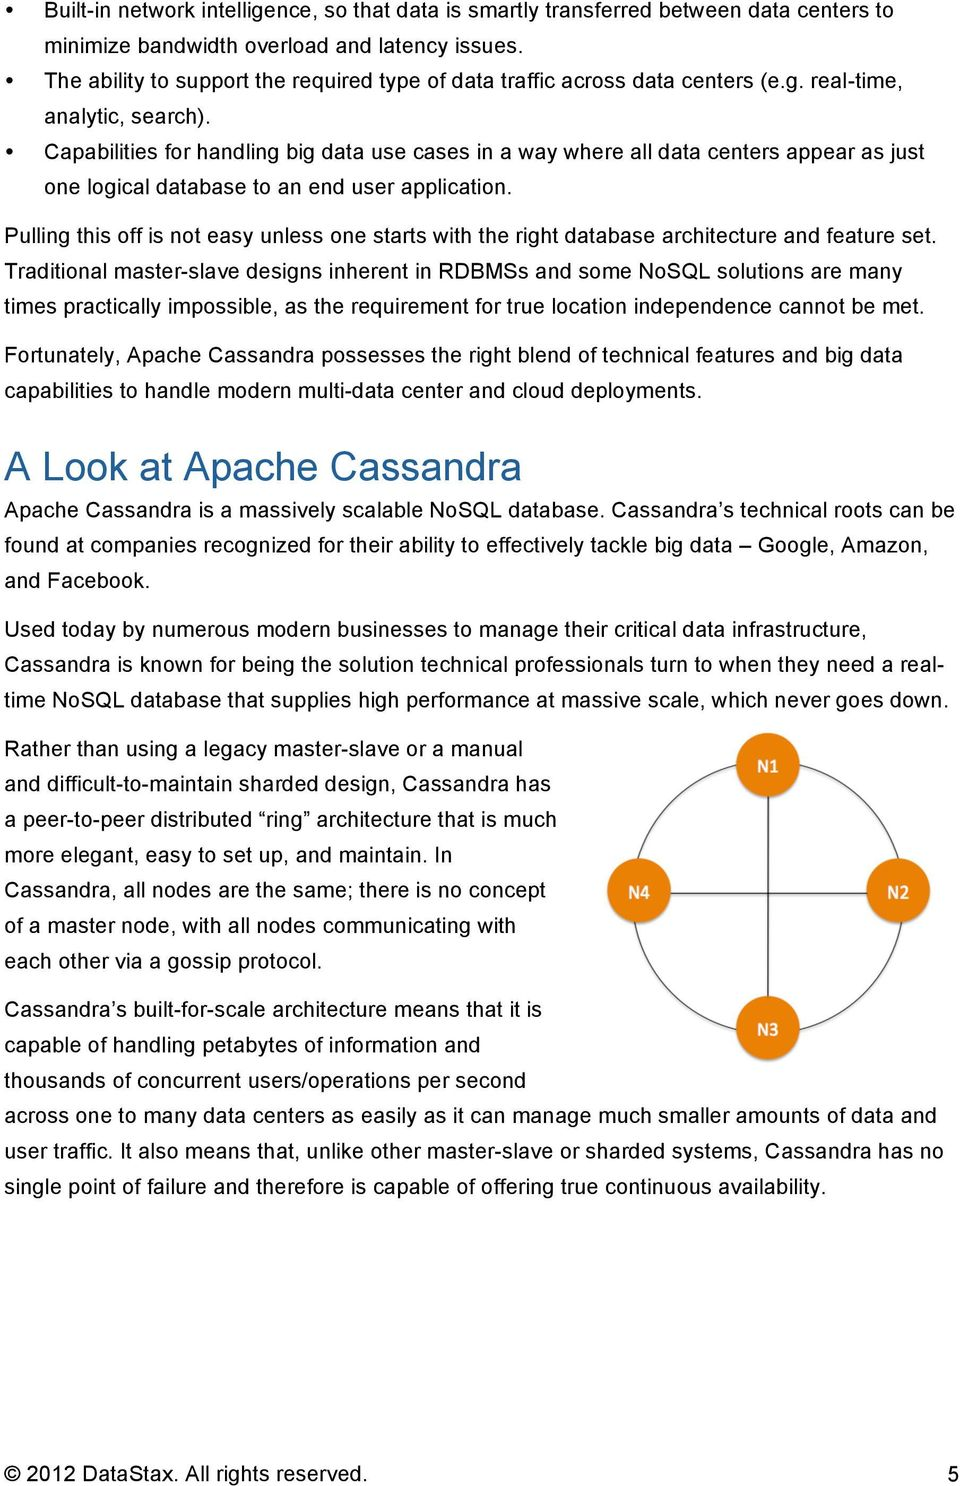 Capabilities for handling big data use cases in a way where all data centers  appear as